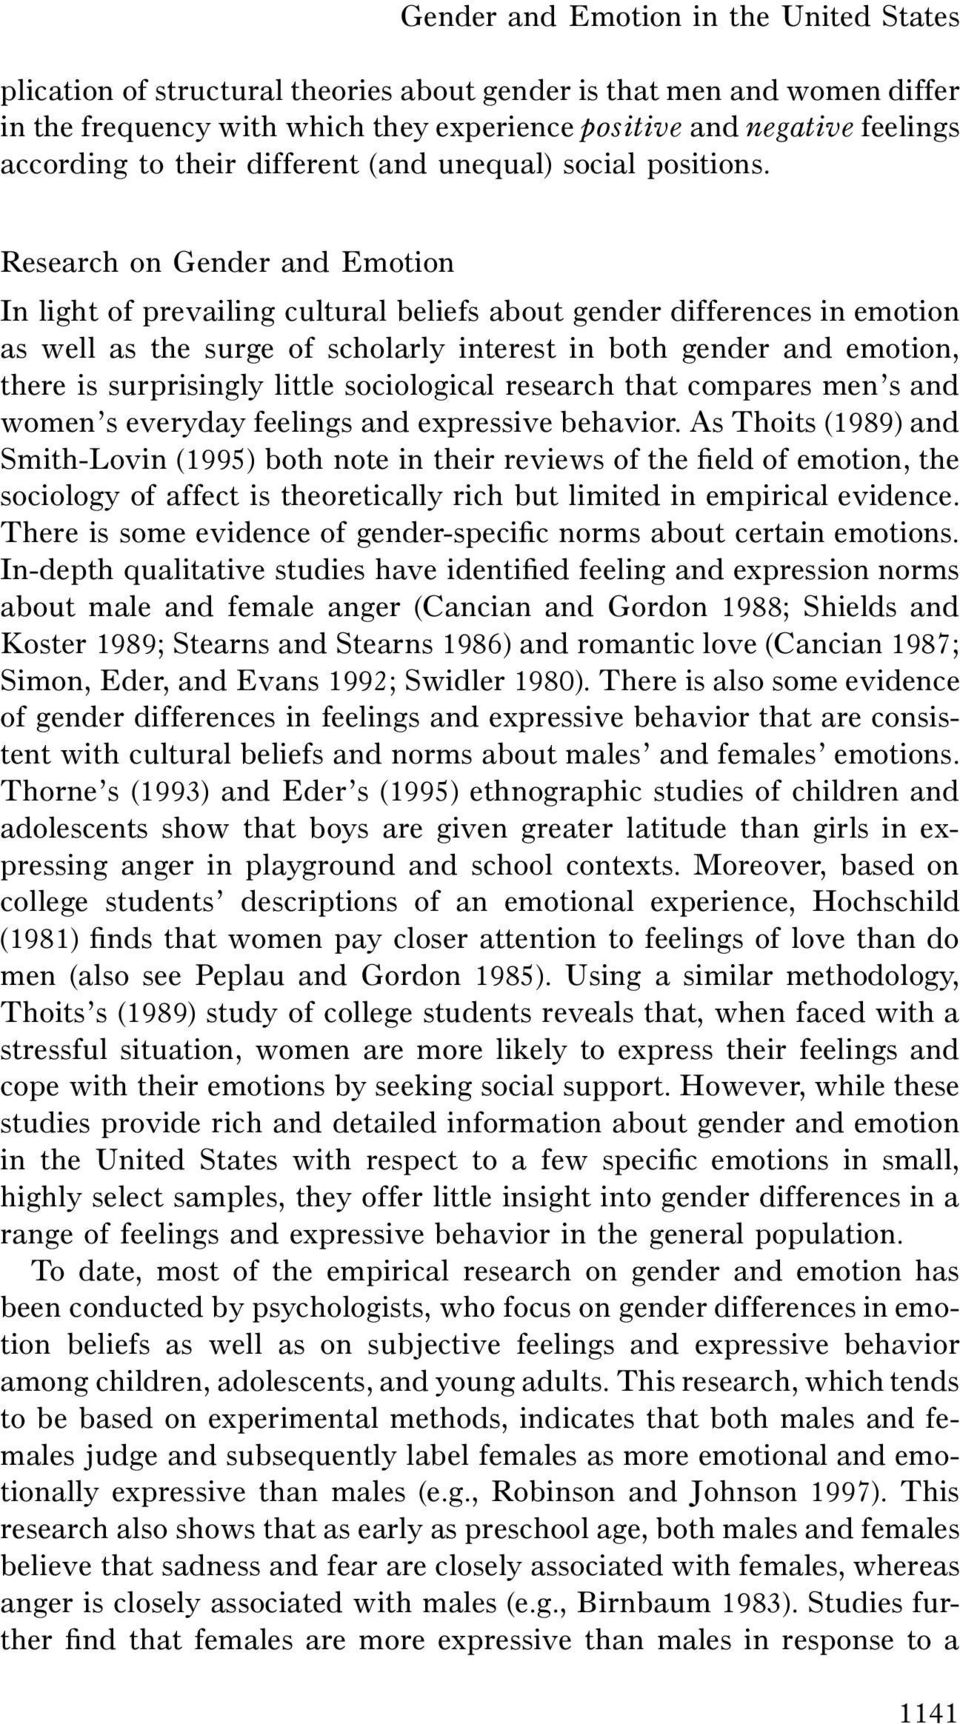 Research on Gender and Emotion In light of prevailing cultural beliefs about gender differences in emotion as well as the surge of scholarly interest in both gender and emotion, there is surprisingly